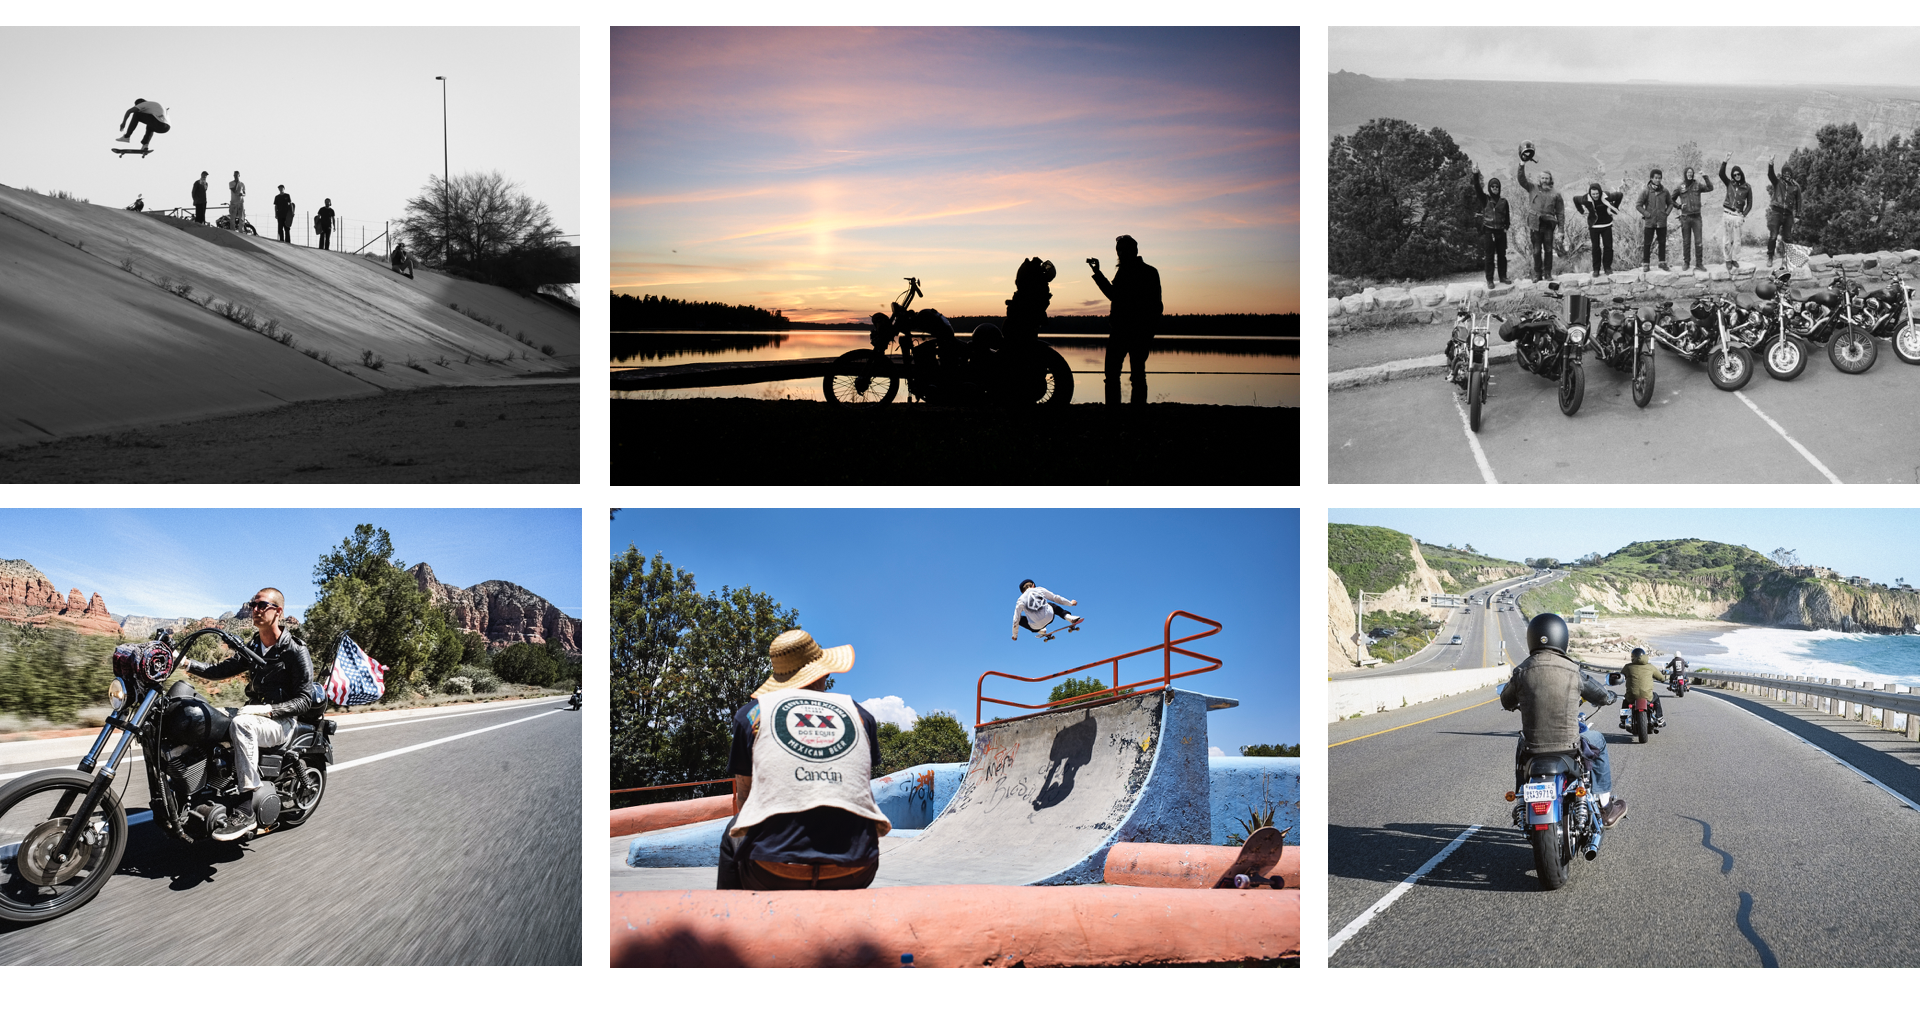 MOTORCYCLING + SKATEBOARDING THROUGH UNITED STATES AND EUROPE